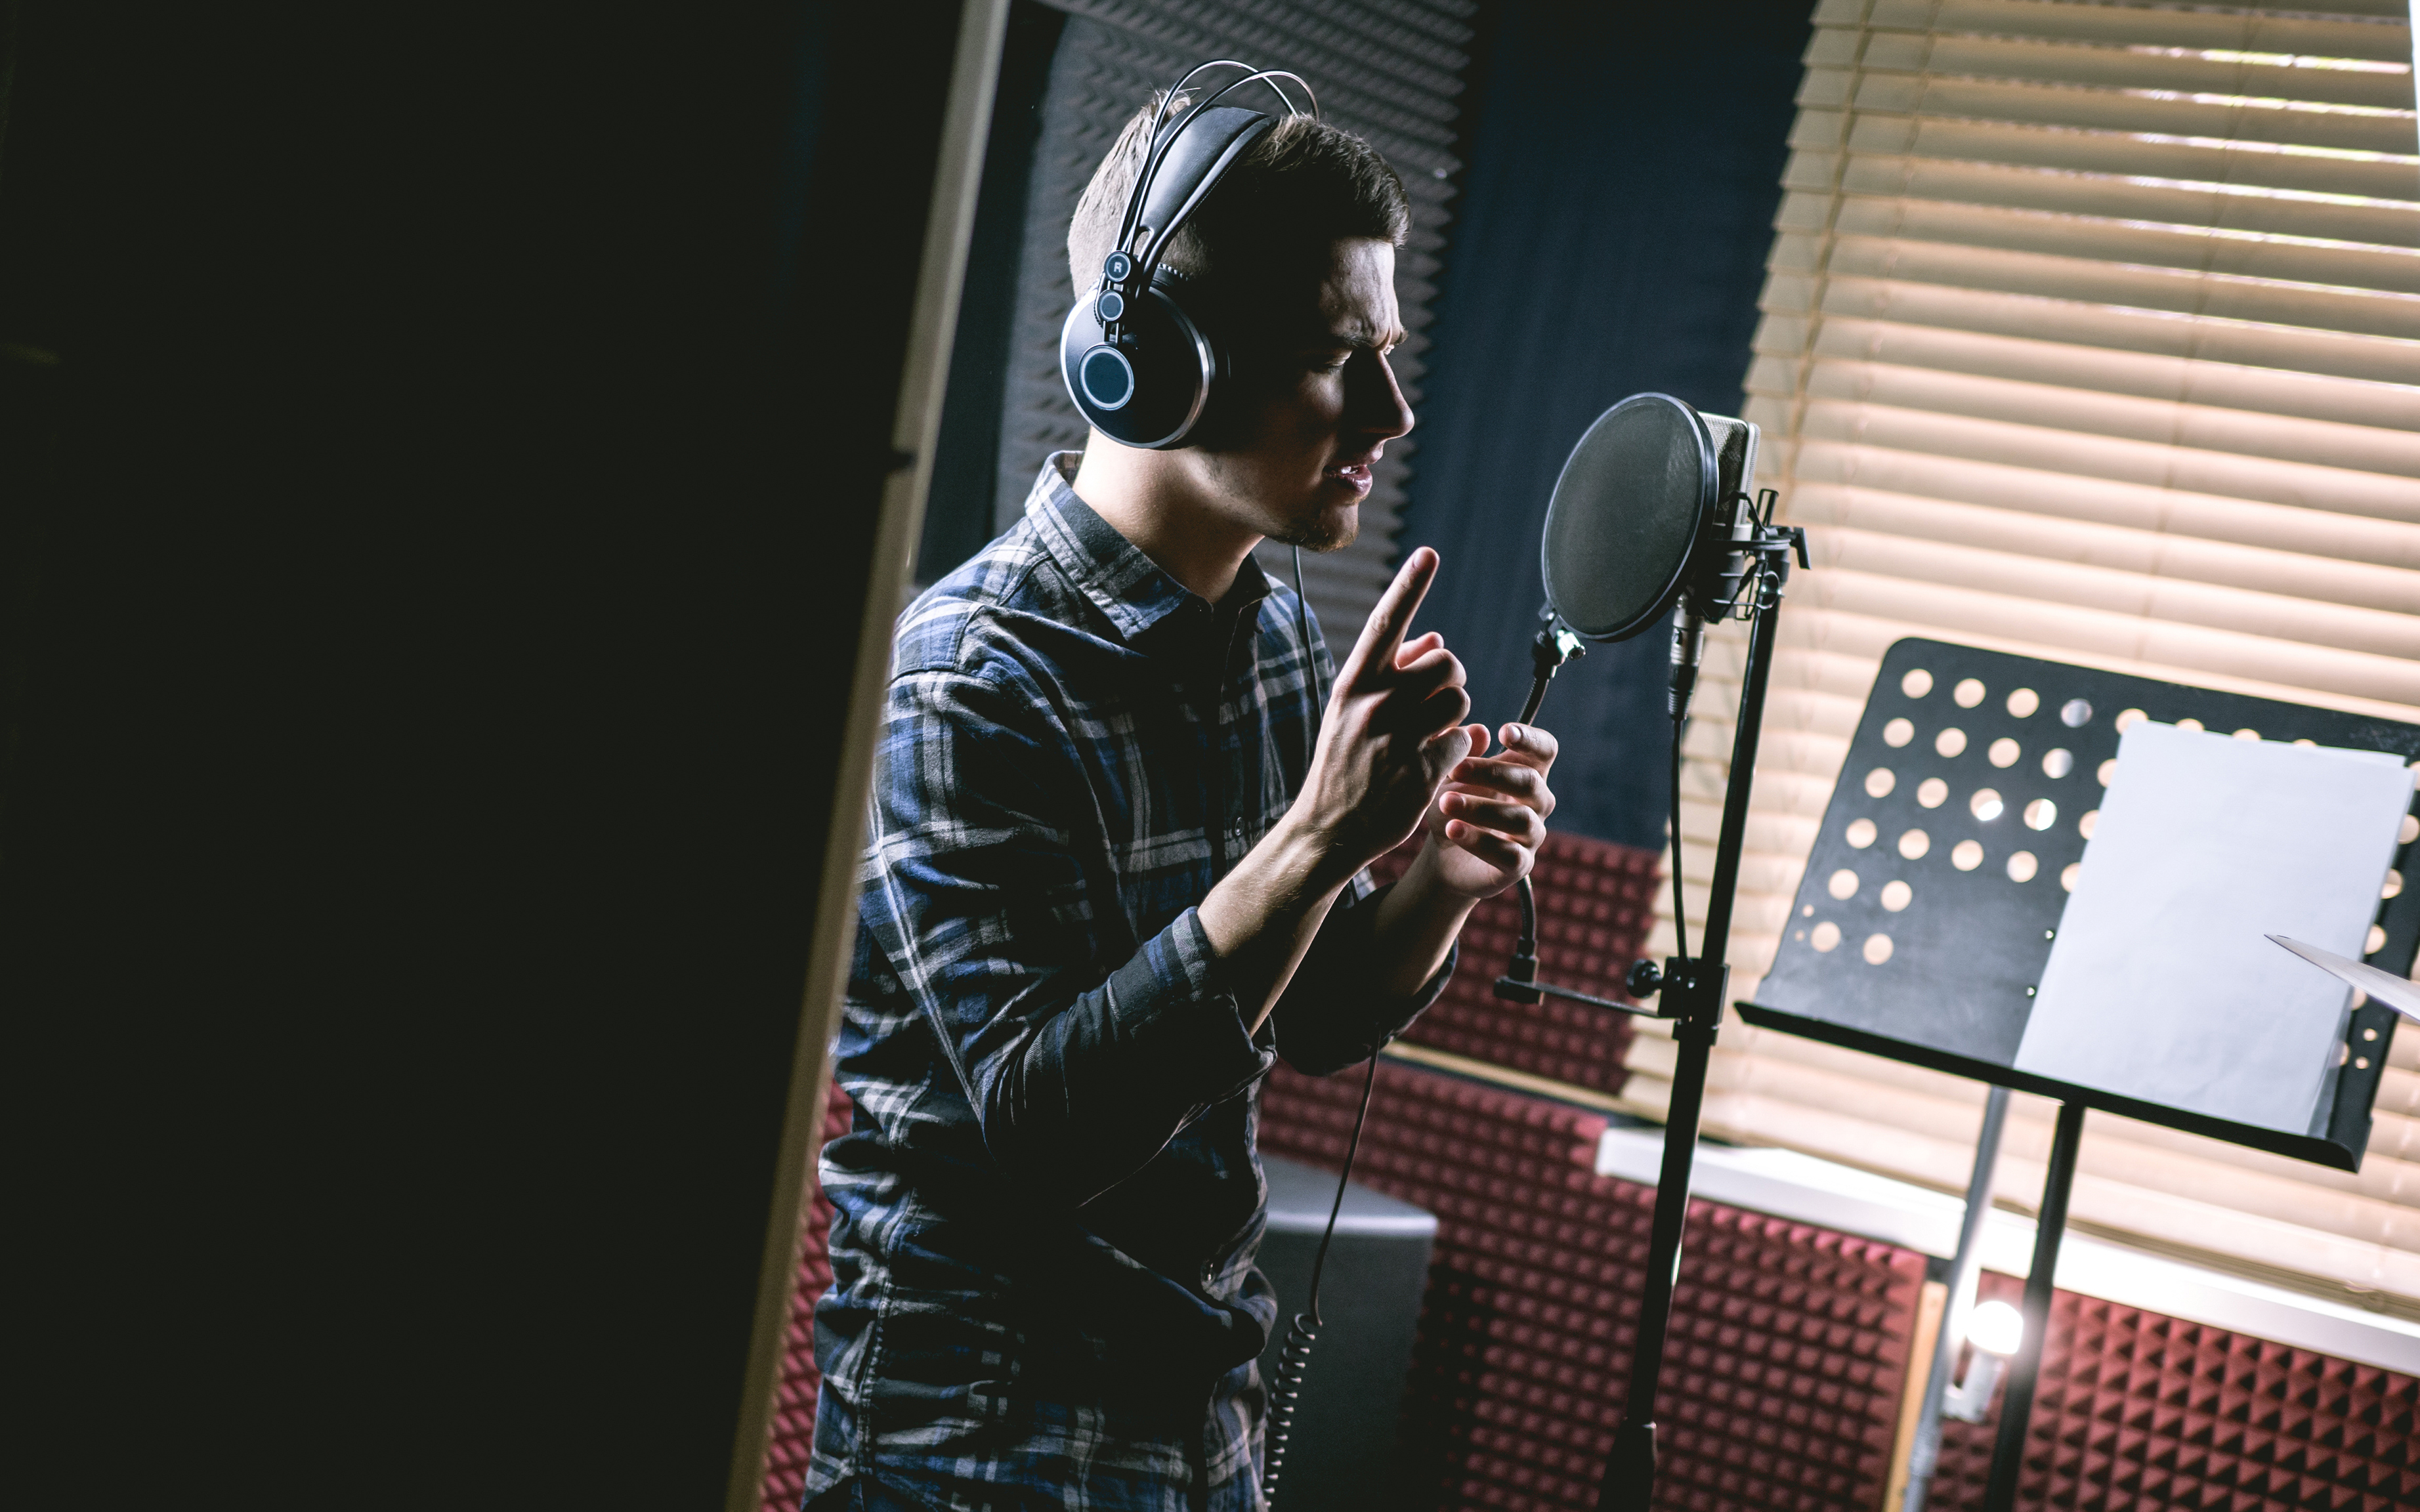 voice-over performance